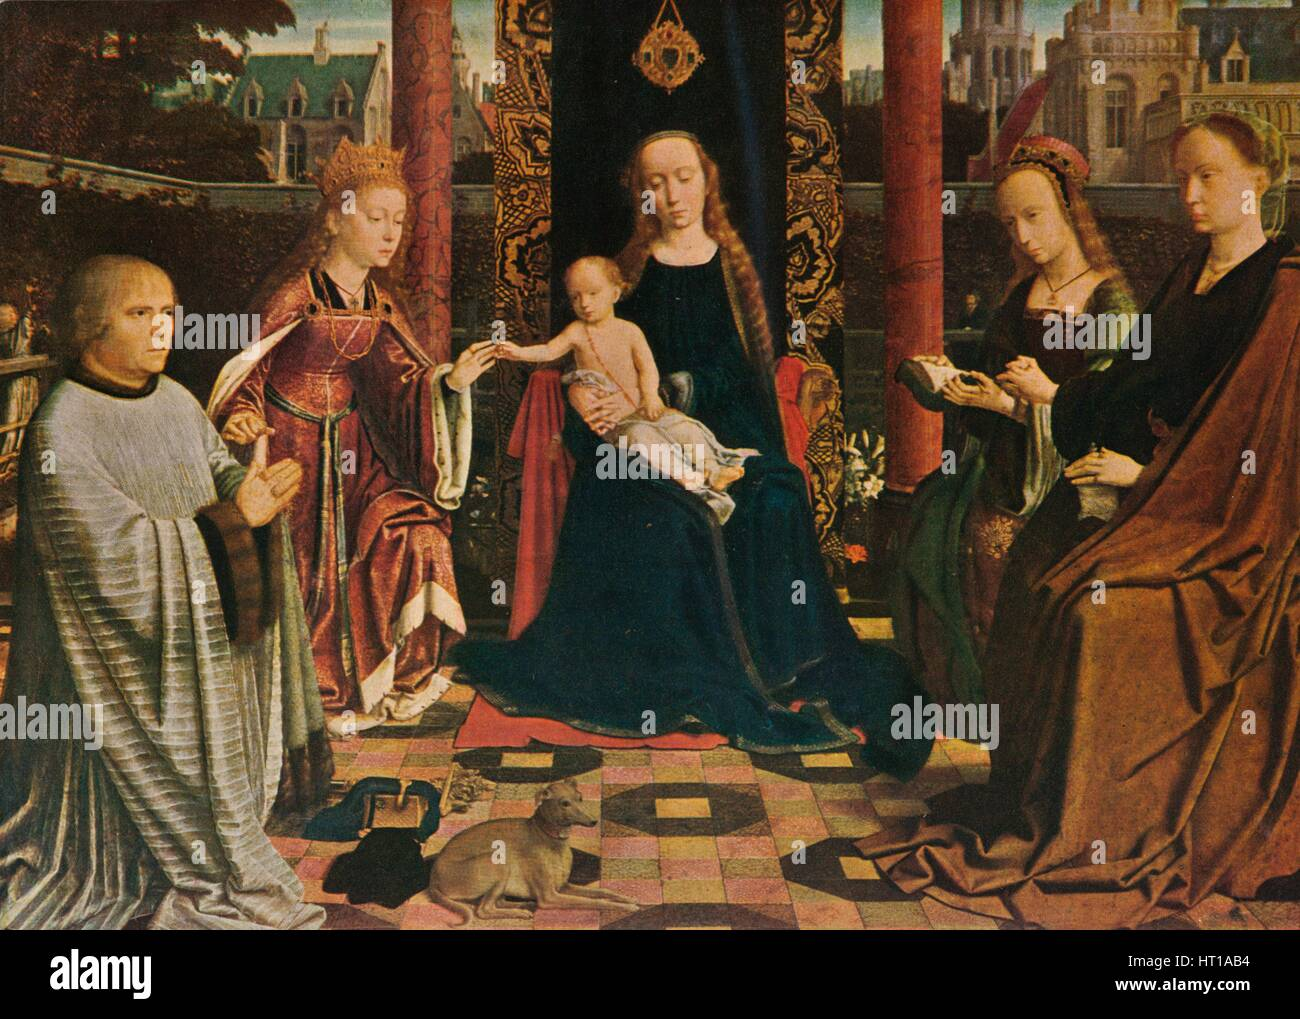 'The Virgin and Child with Saints and Donor', 1510, (1909). Artist: Gerard David. - Stock Image